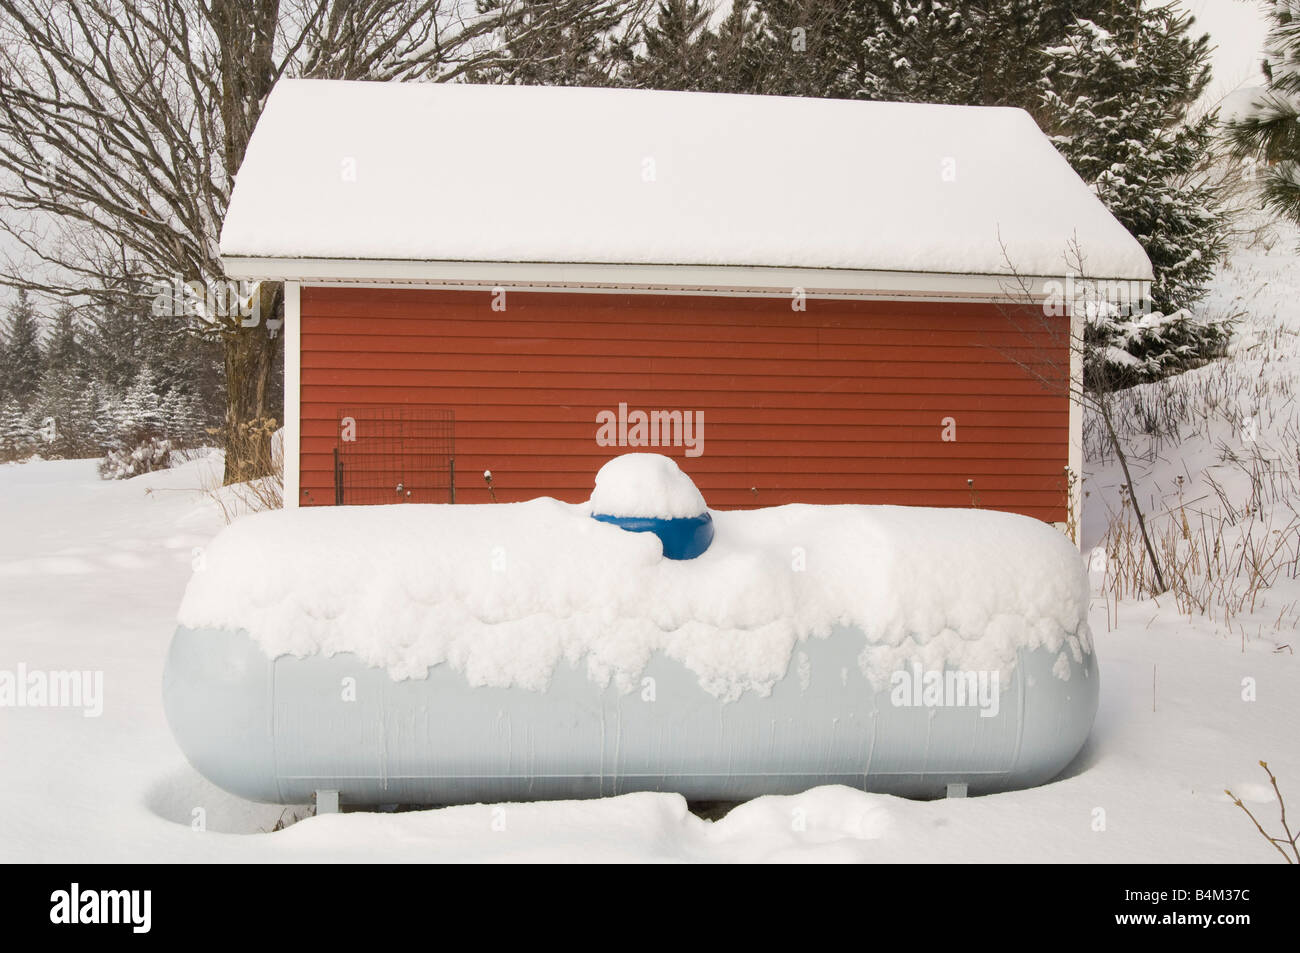 A snow covered propane LP tank and red farm building during winter - Stock Image